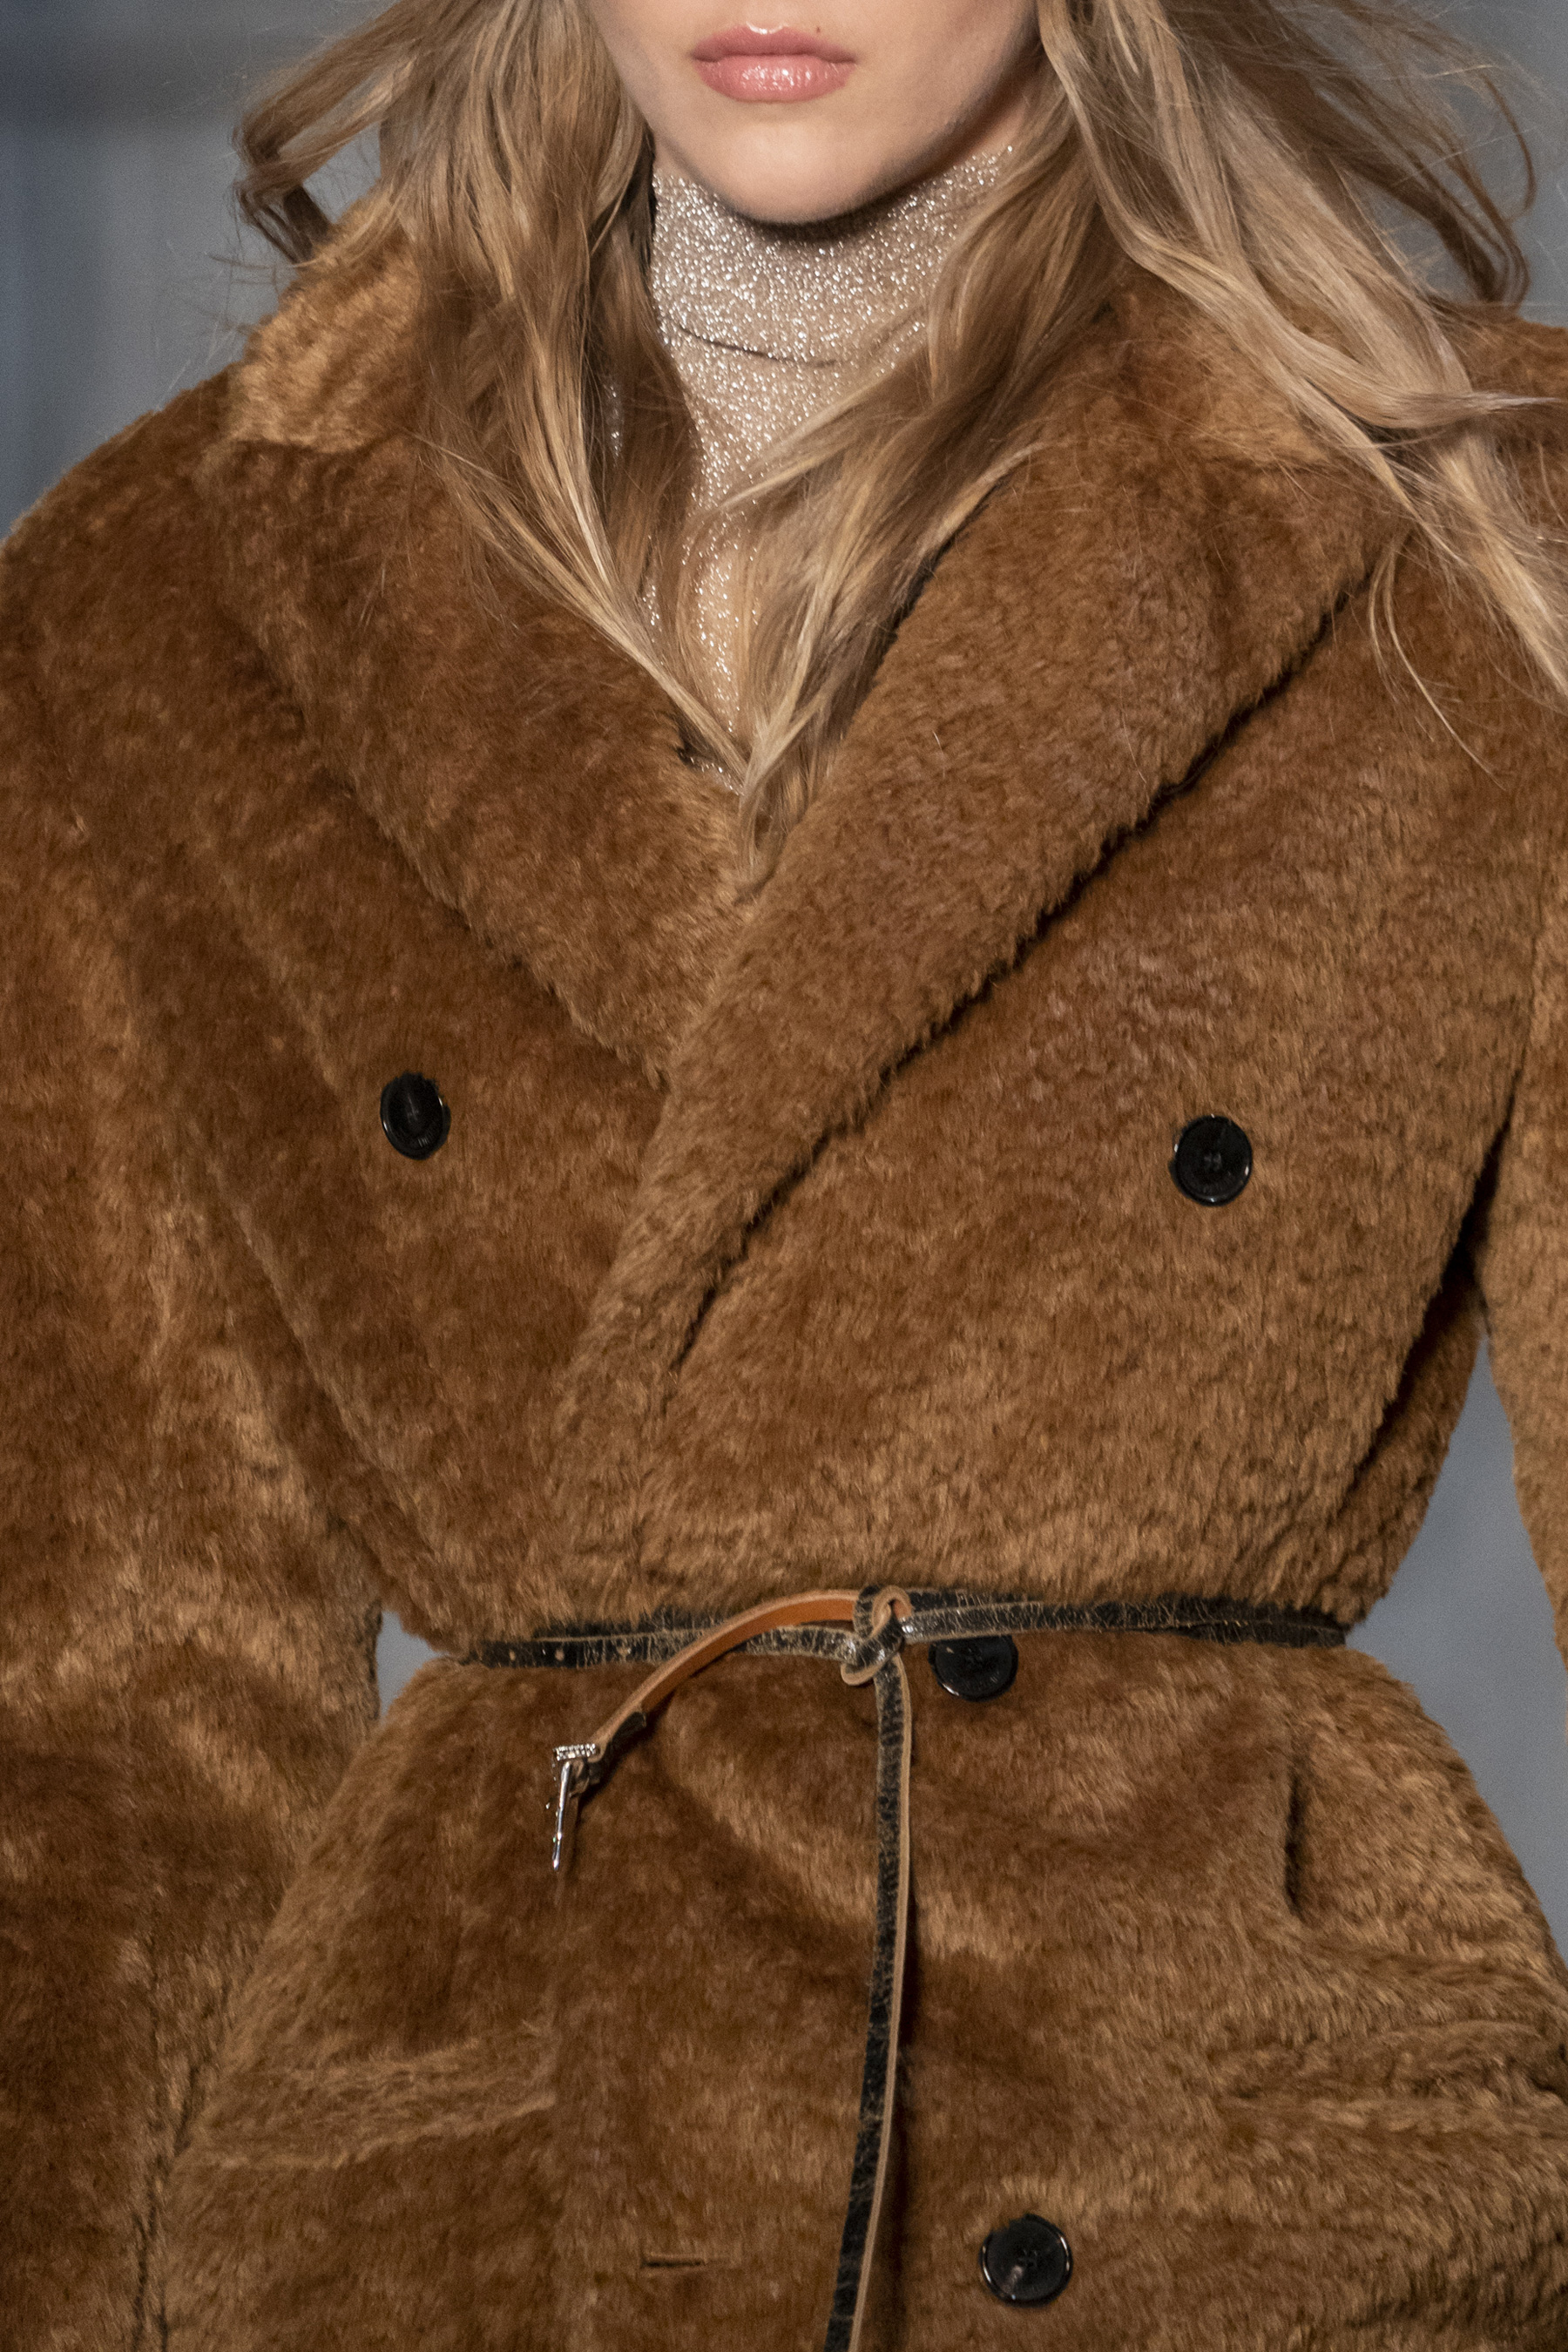 Zadig & Voltaire Fall 2019 Fashion Show Details